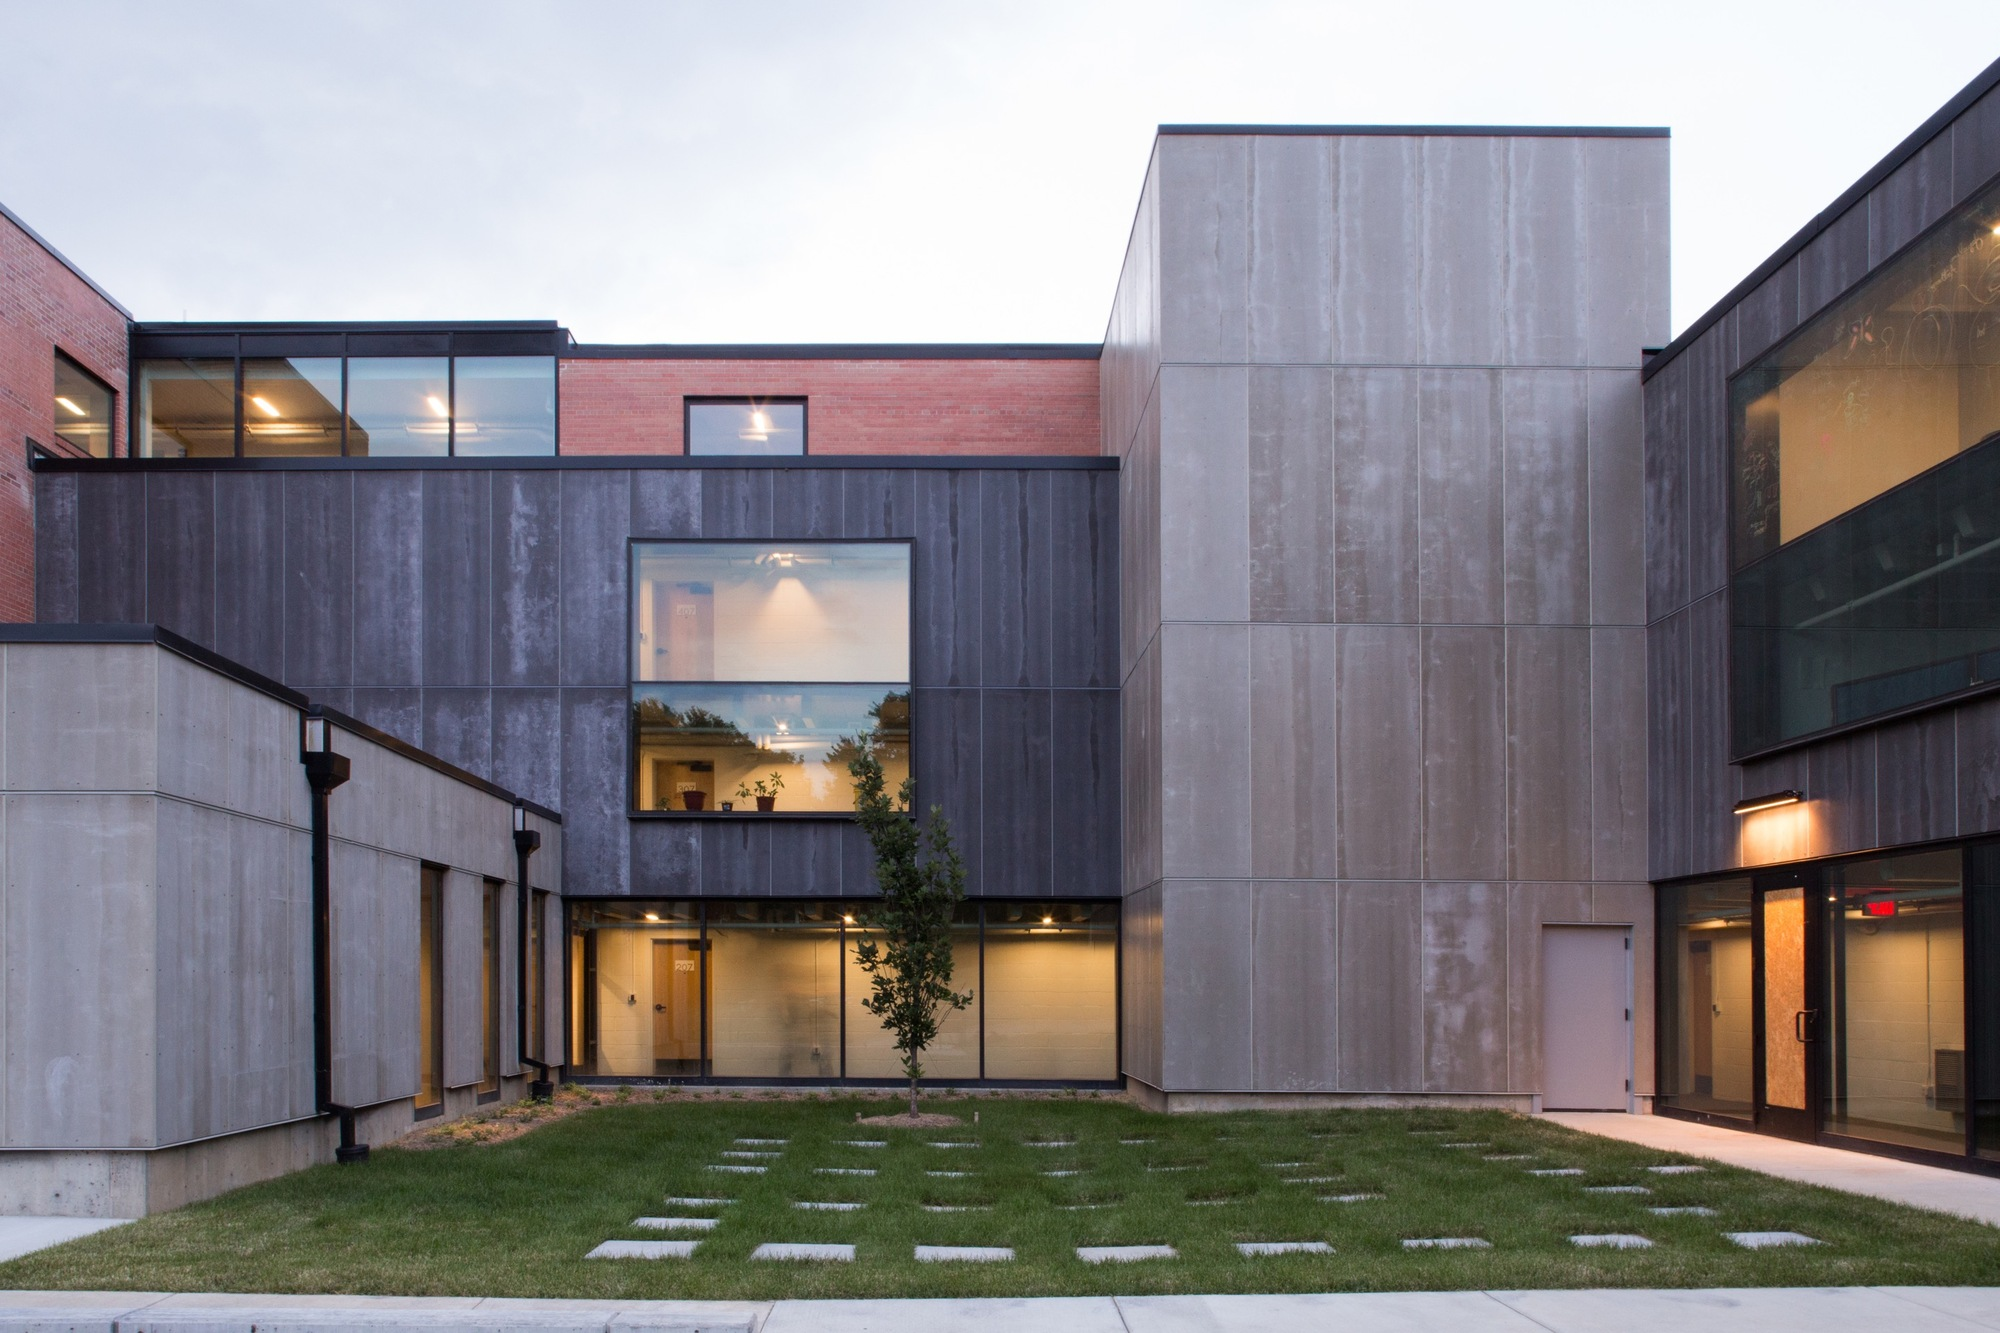 Gallery of aia names the best housing projects of 2017 48 for Best housing projects